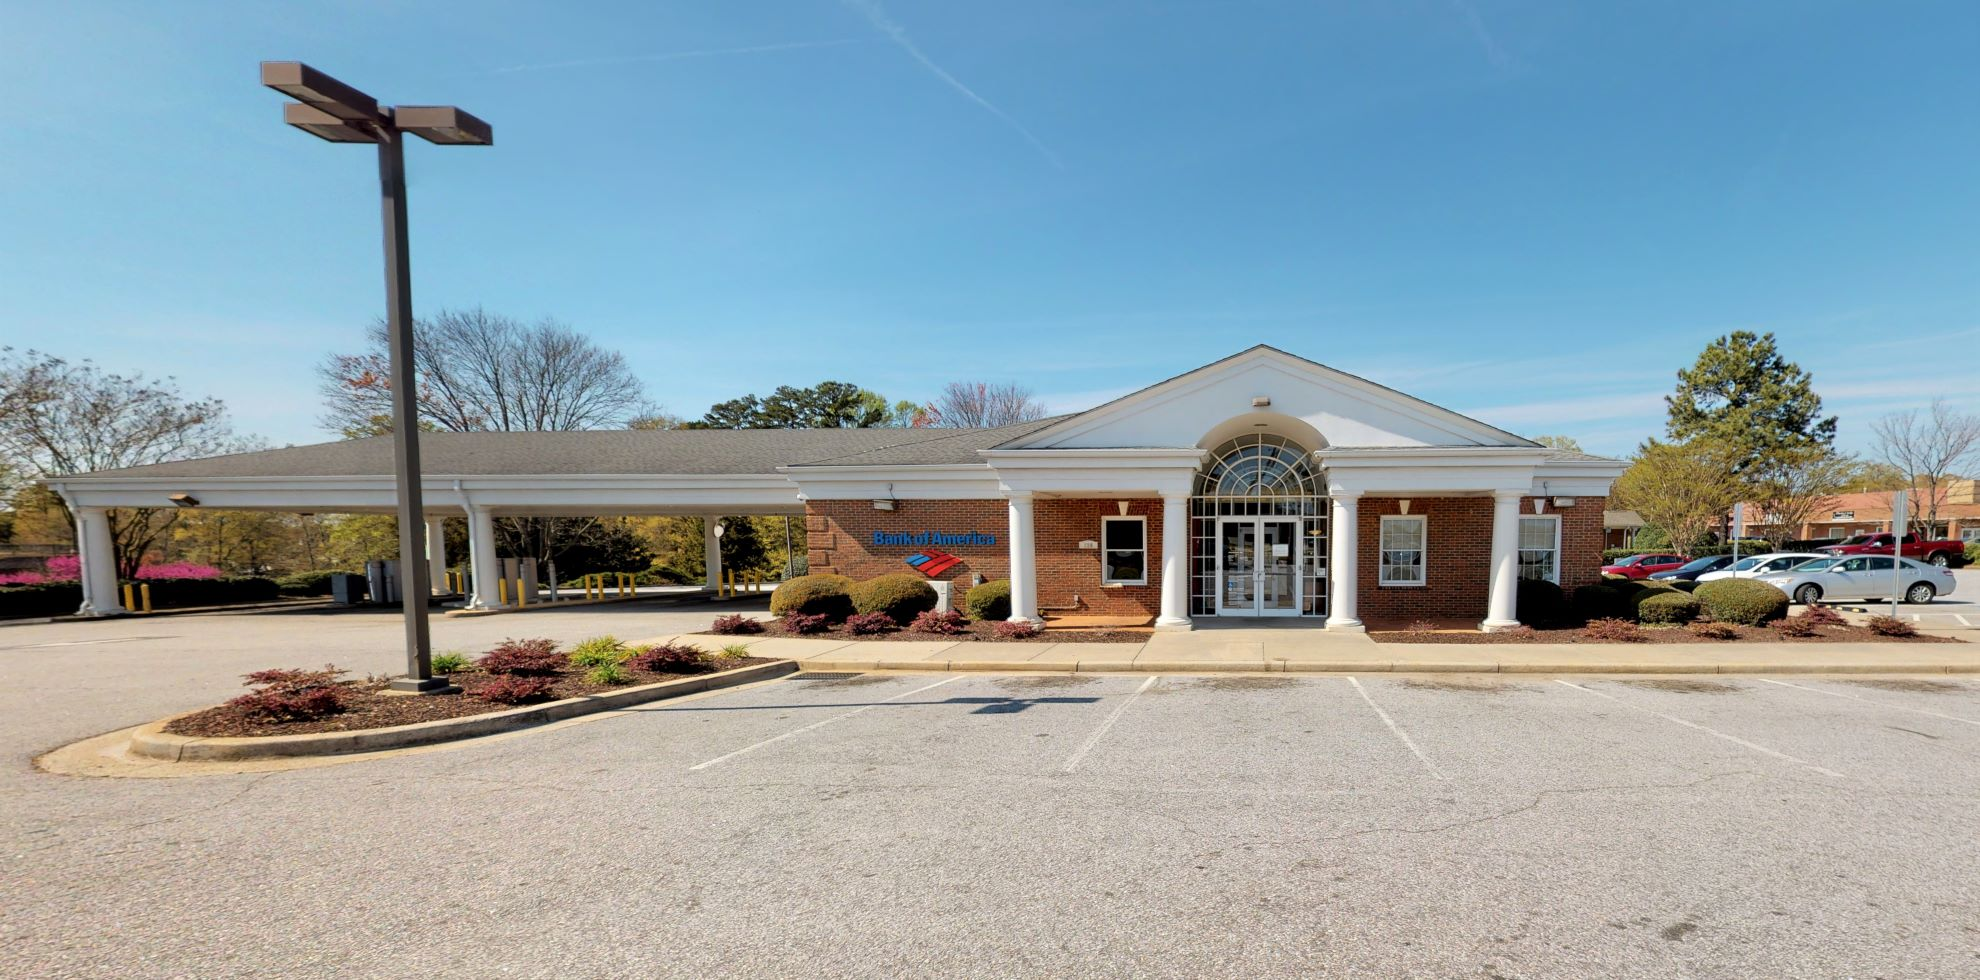 Bank of America financial center with drive-thru ATM   126 W Butler Rd, Mauldin, SC 29662